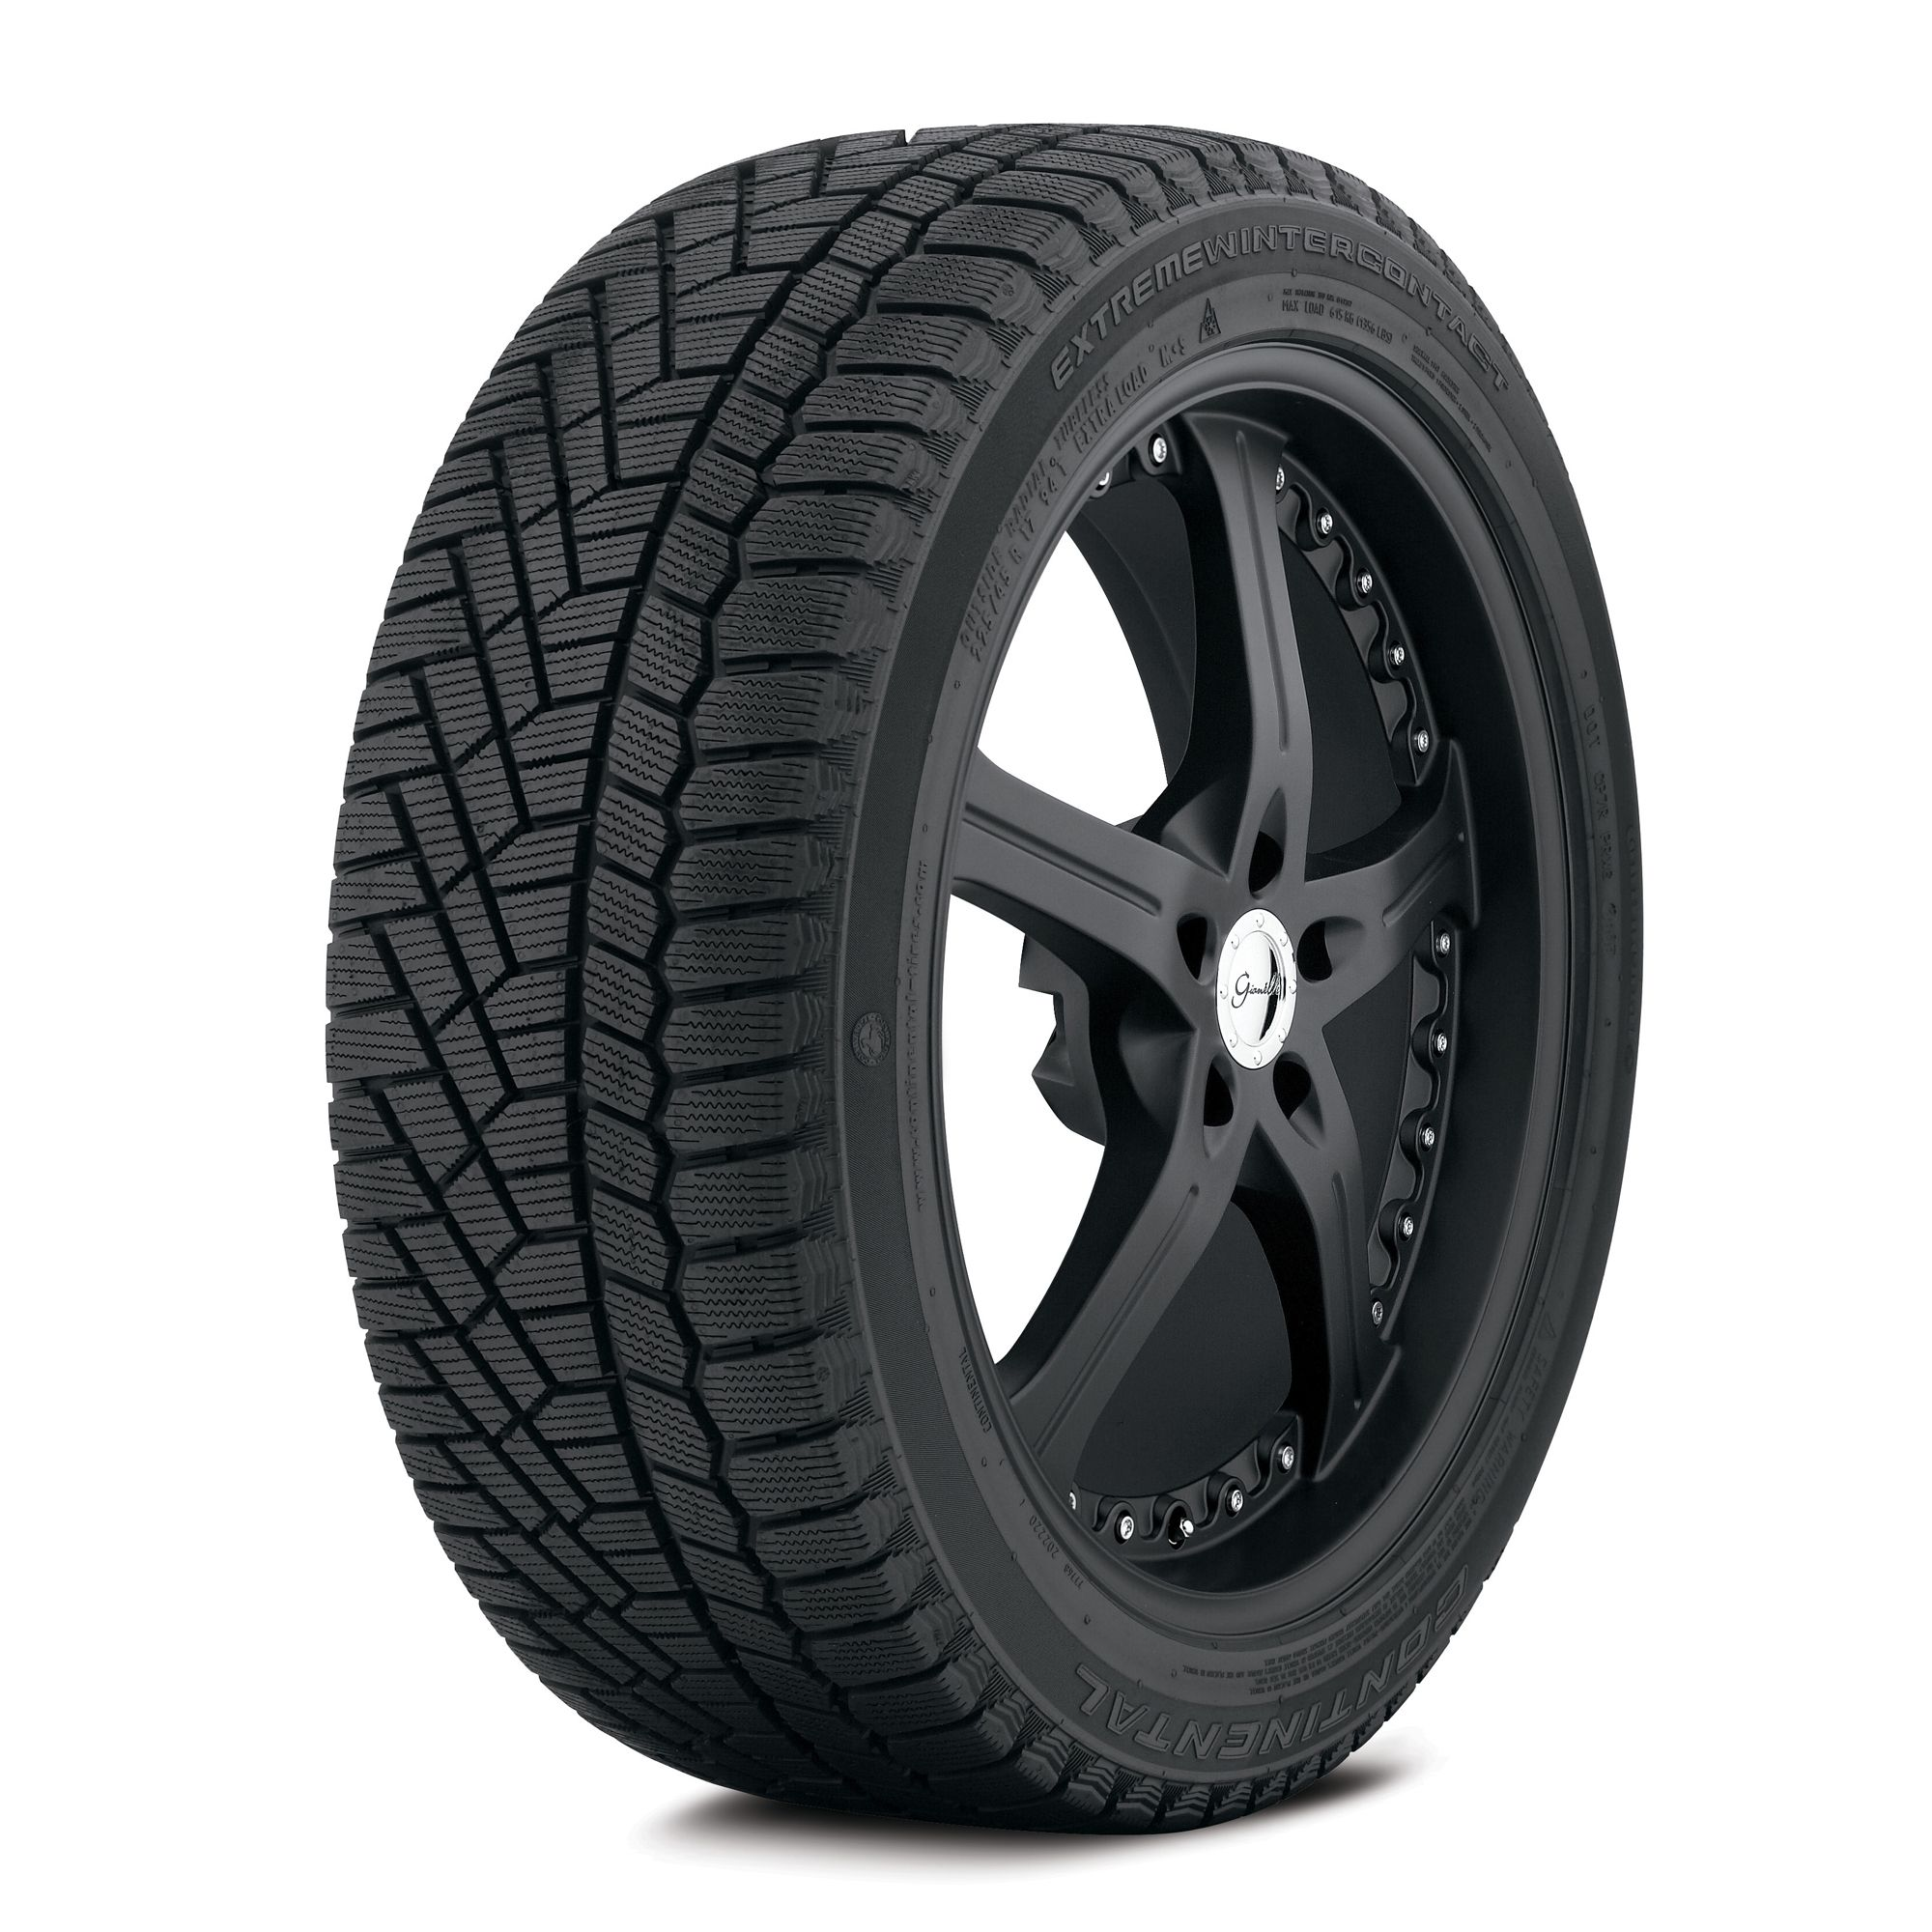 Continental Extreme Winter Contact - 265/65R17 112Q BSW - Winter Tire